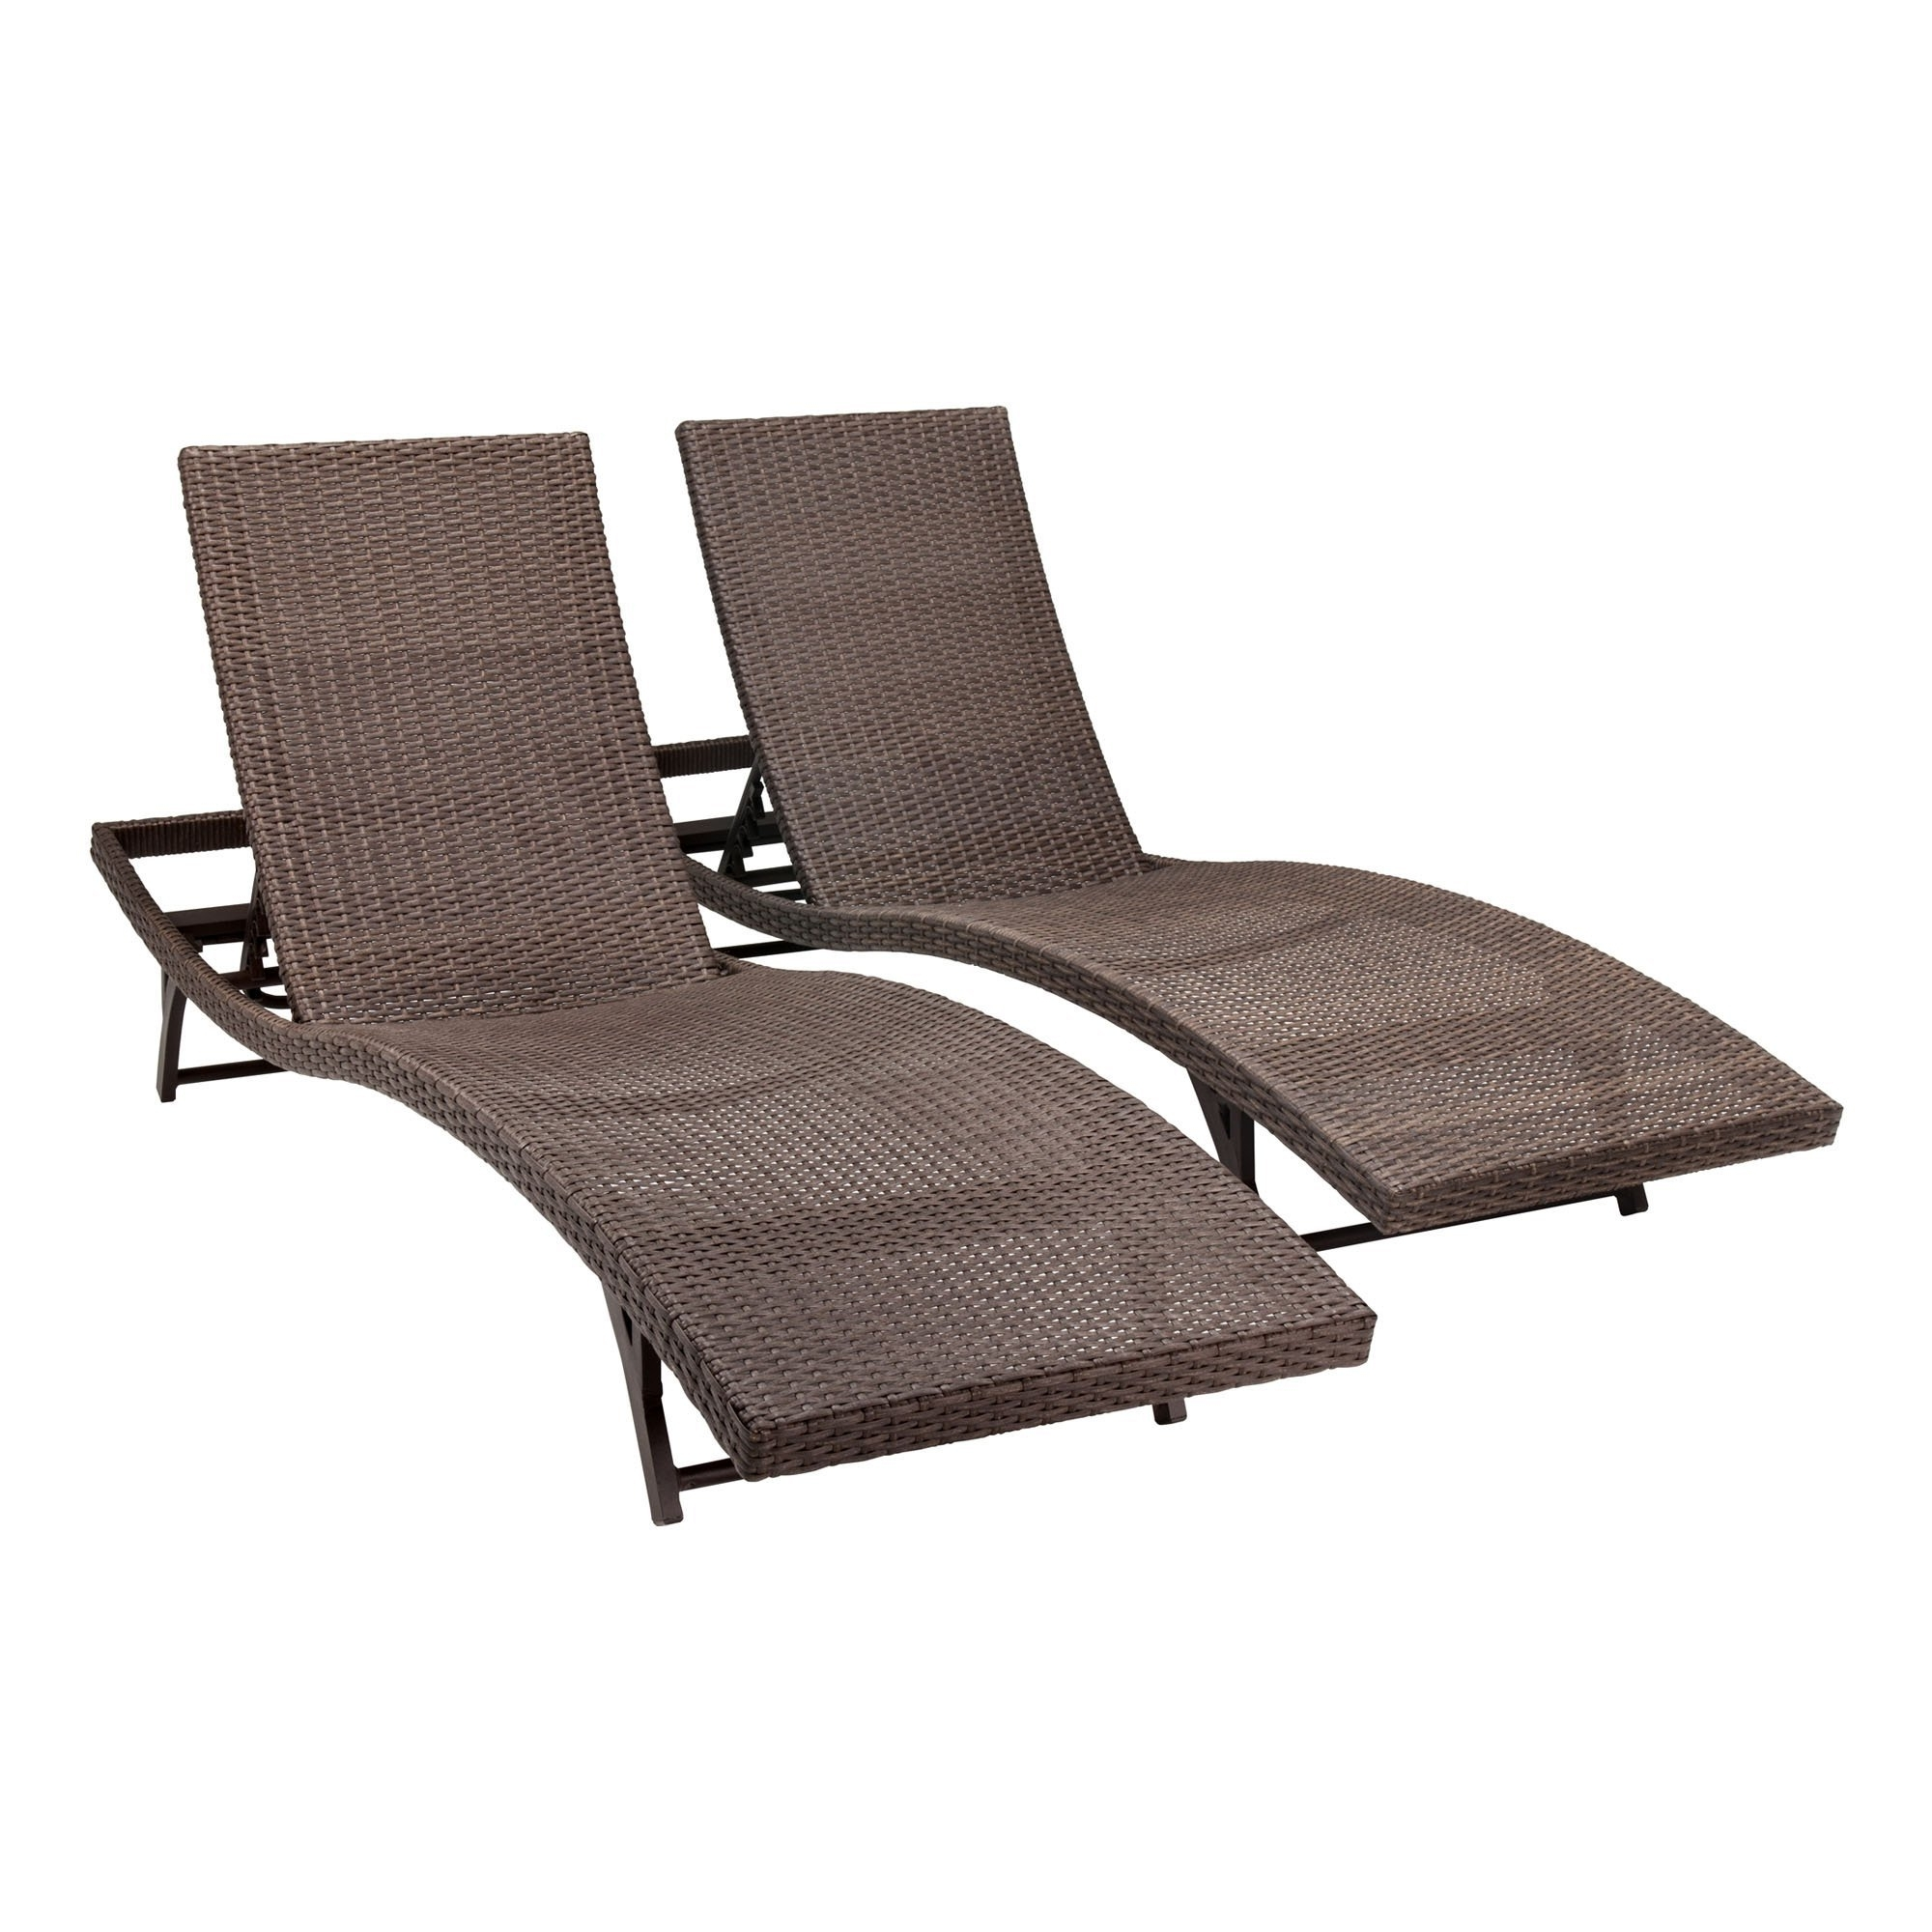 Outdoor : Cheap Lounge Chairs Vinyl Strap Chaise Lounge Home Depot  Throughout Recent Vinyl Chaise Lounge